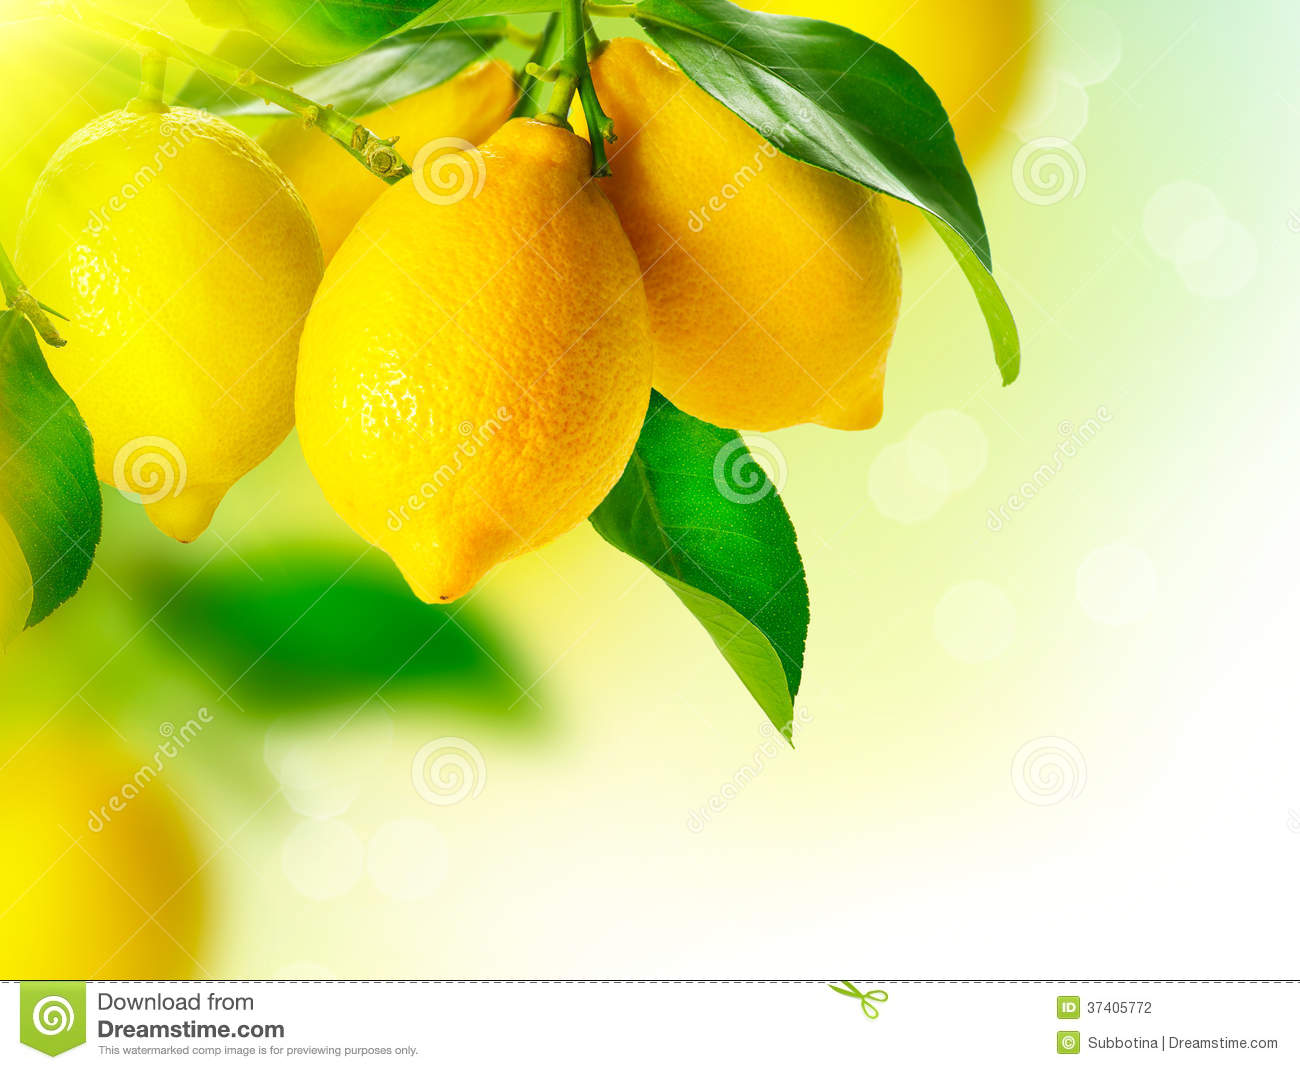 Lemons Hanging on a Lemon tree